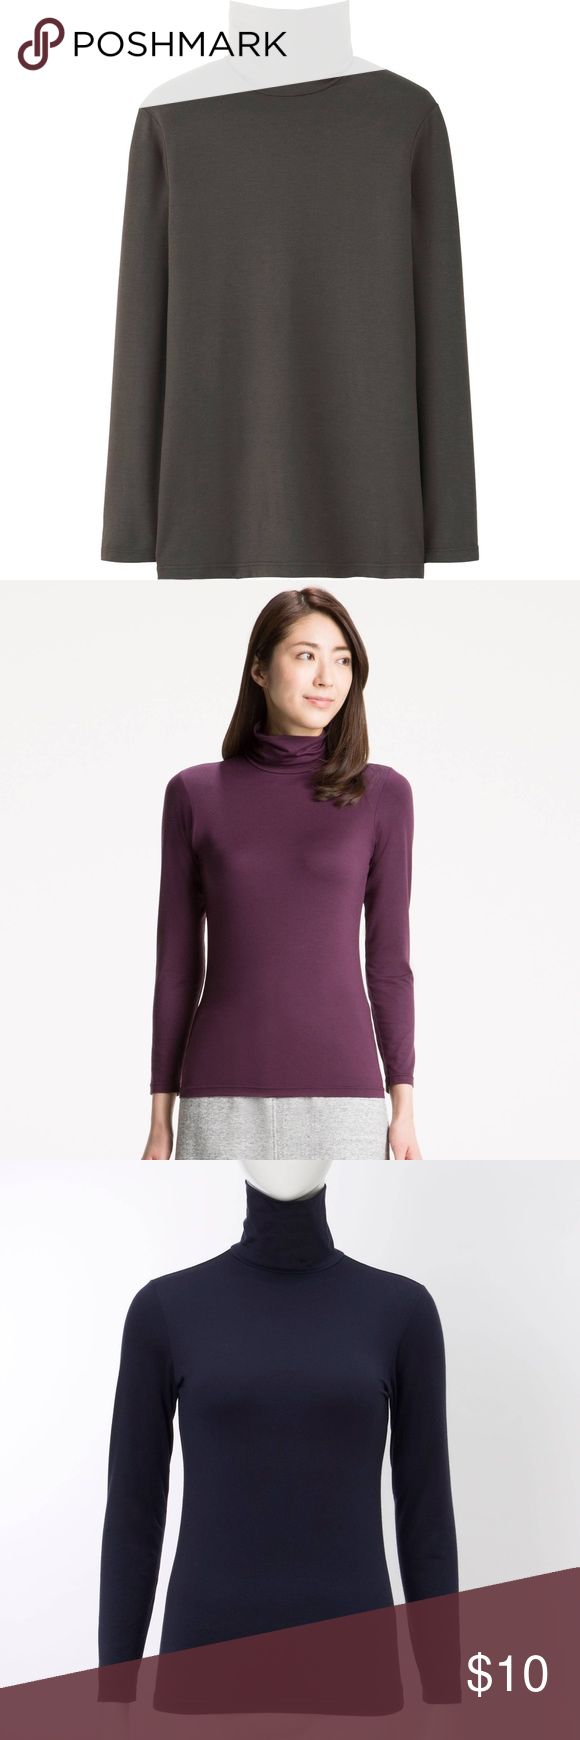 {Uniqlo} Heattech Olive turtleneck. Uniqlo Heattech Olive turtleneck top. Perfect for layering on. Stretchy and fitted, not bulky, with a smooth feel for superb cold-weather comfort. Different color shirts are posted for inspiration only, the one I'm selling is in Olive. Used once. Make an offer!🎀🛍📦 Uniqlo Tops Tees - Long Sleeve